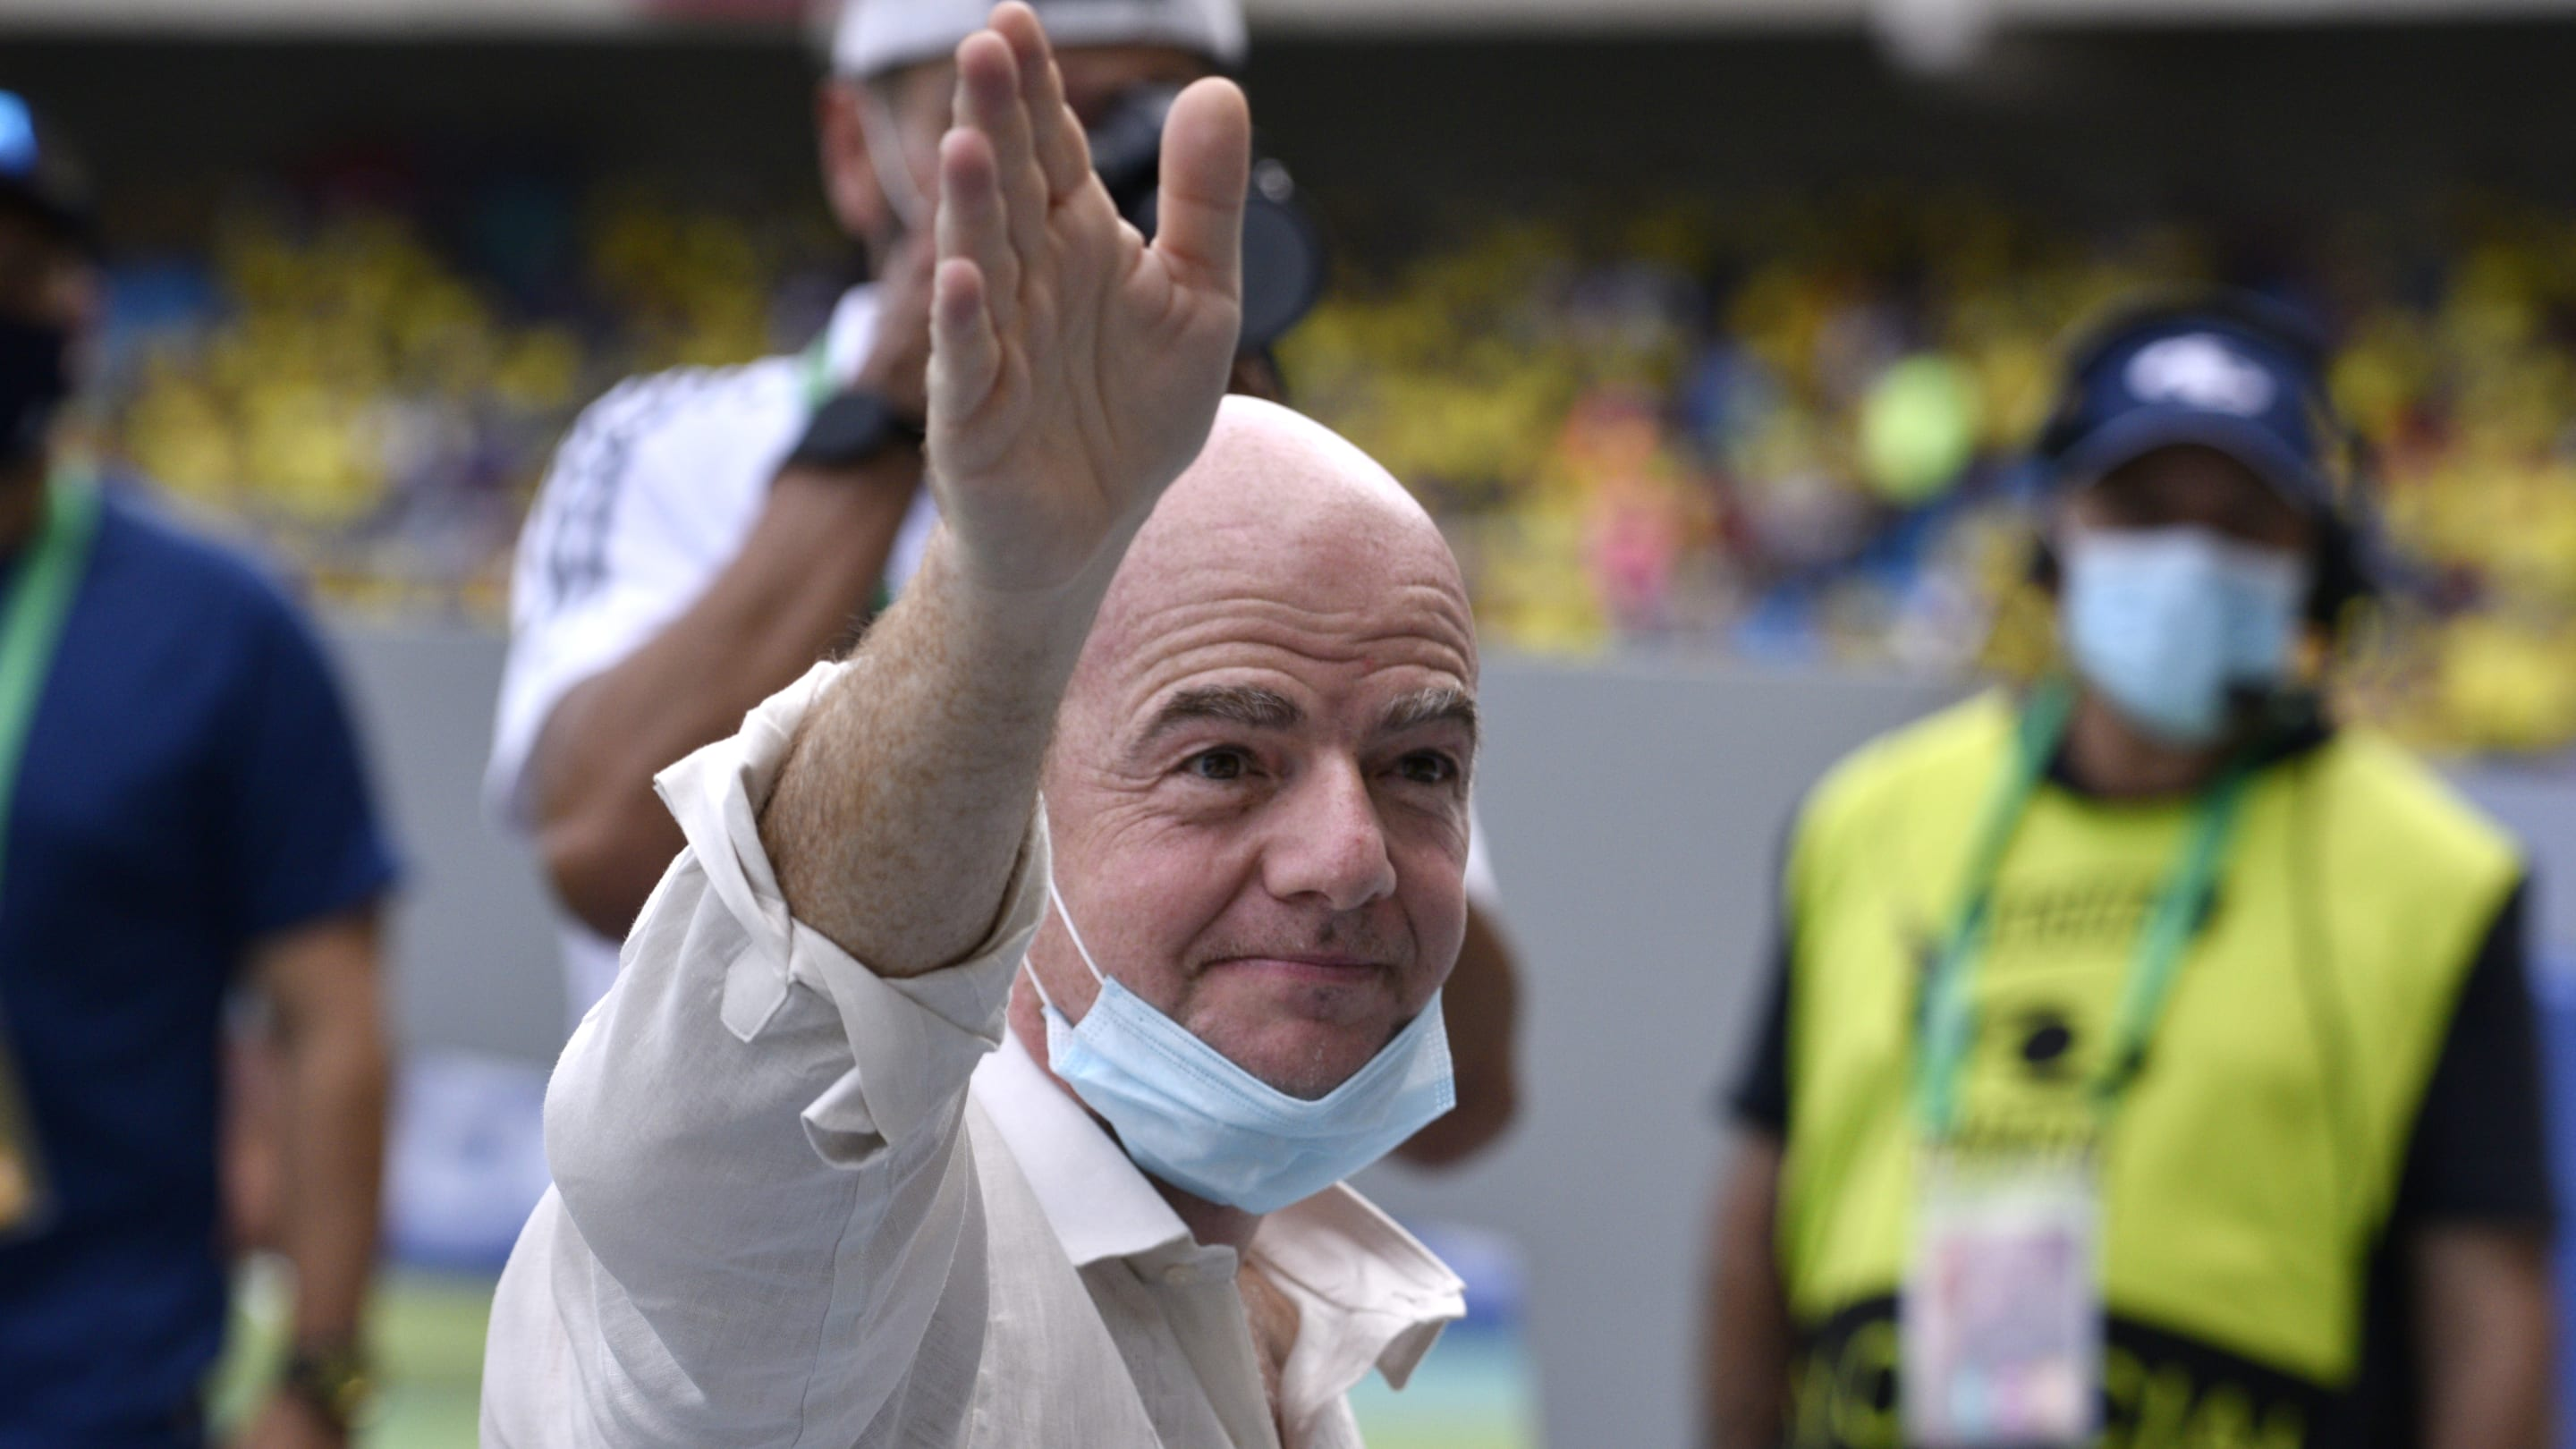 Gianni Infantino discusses idea of biennial World Cups with alternating teams